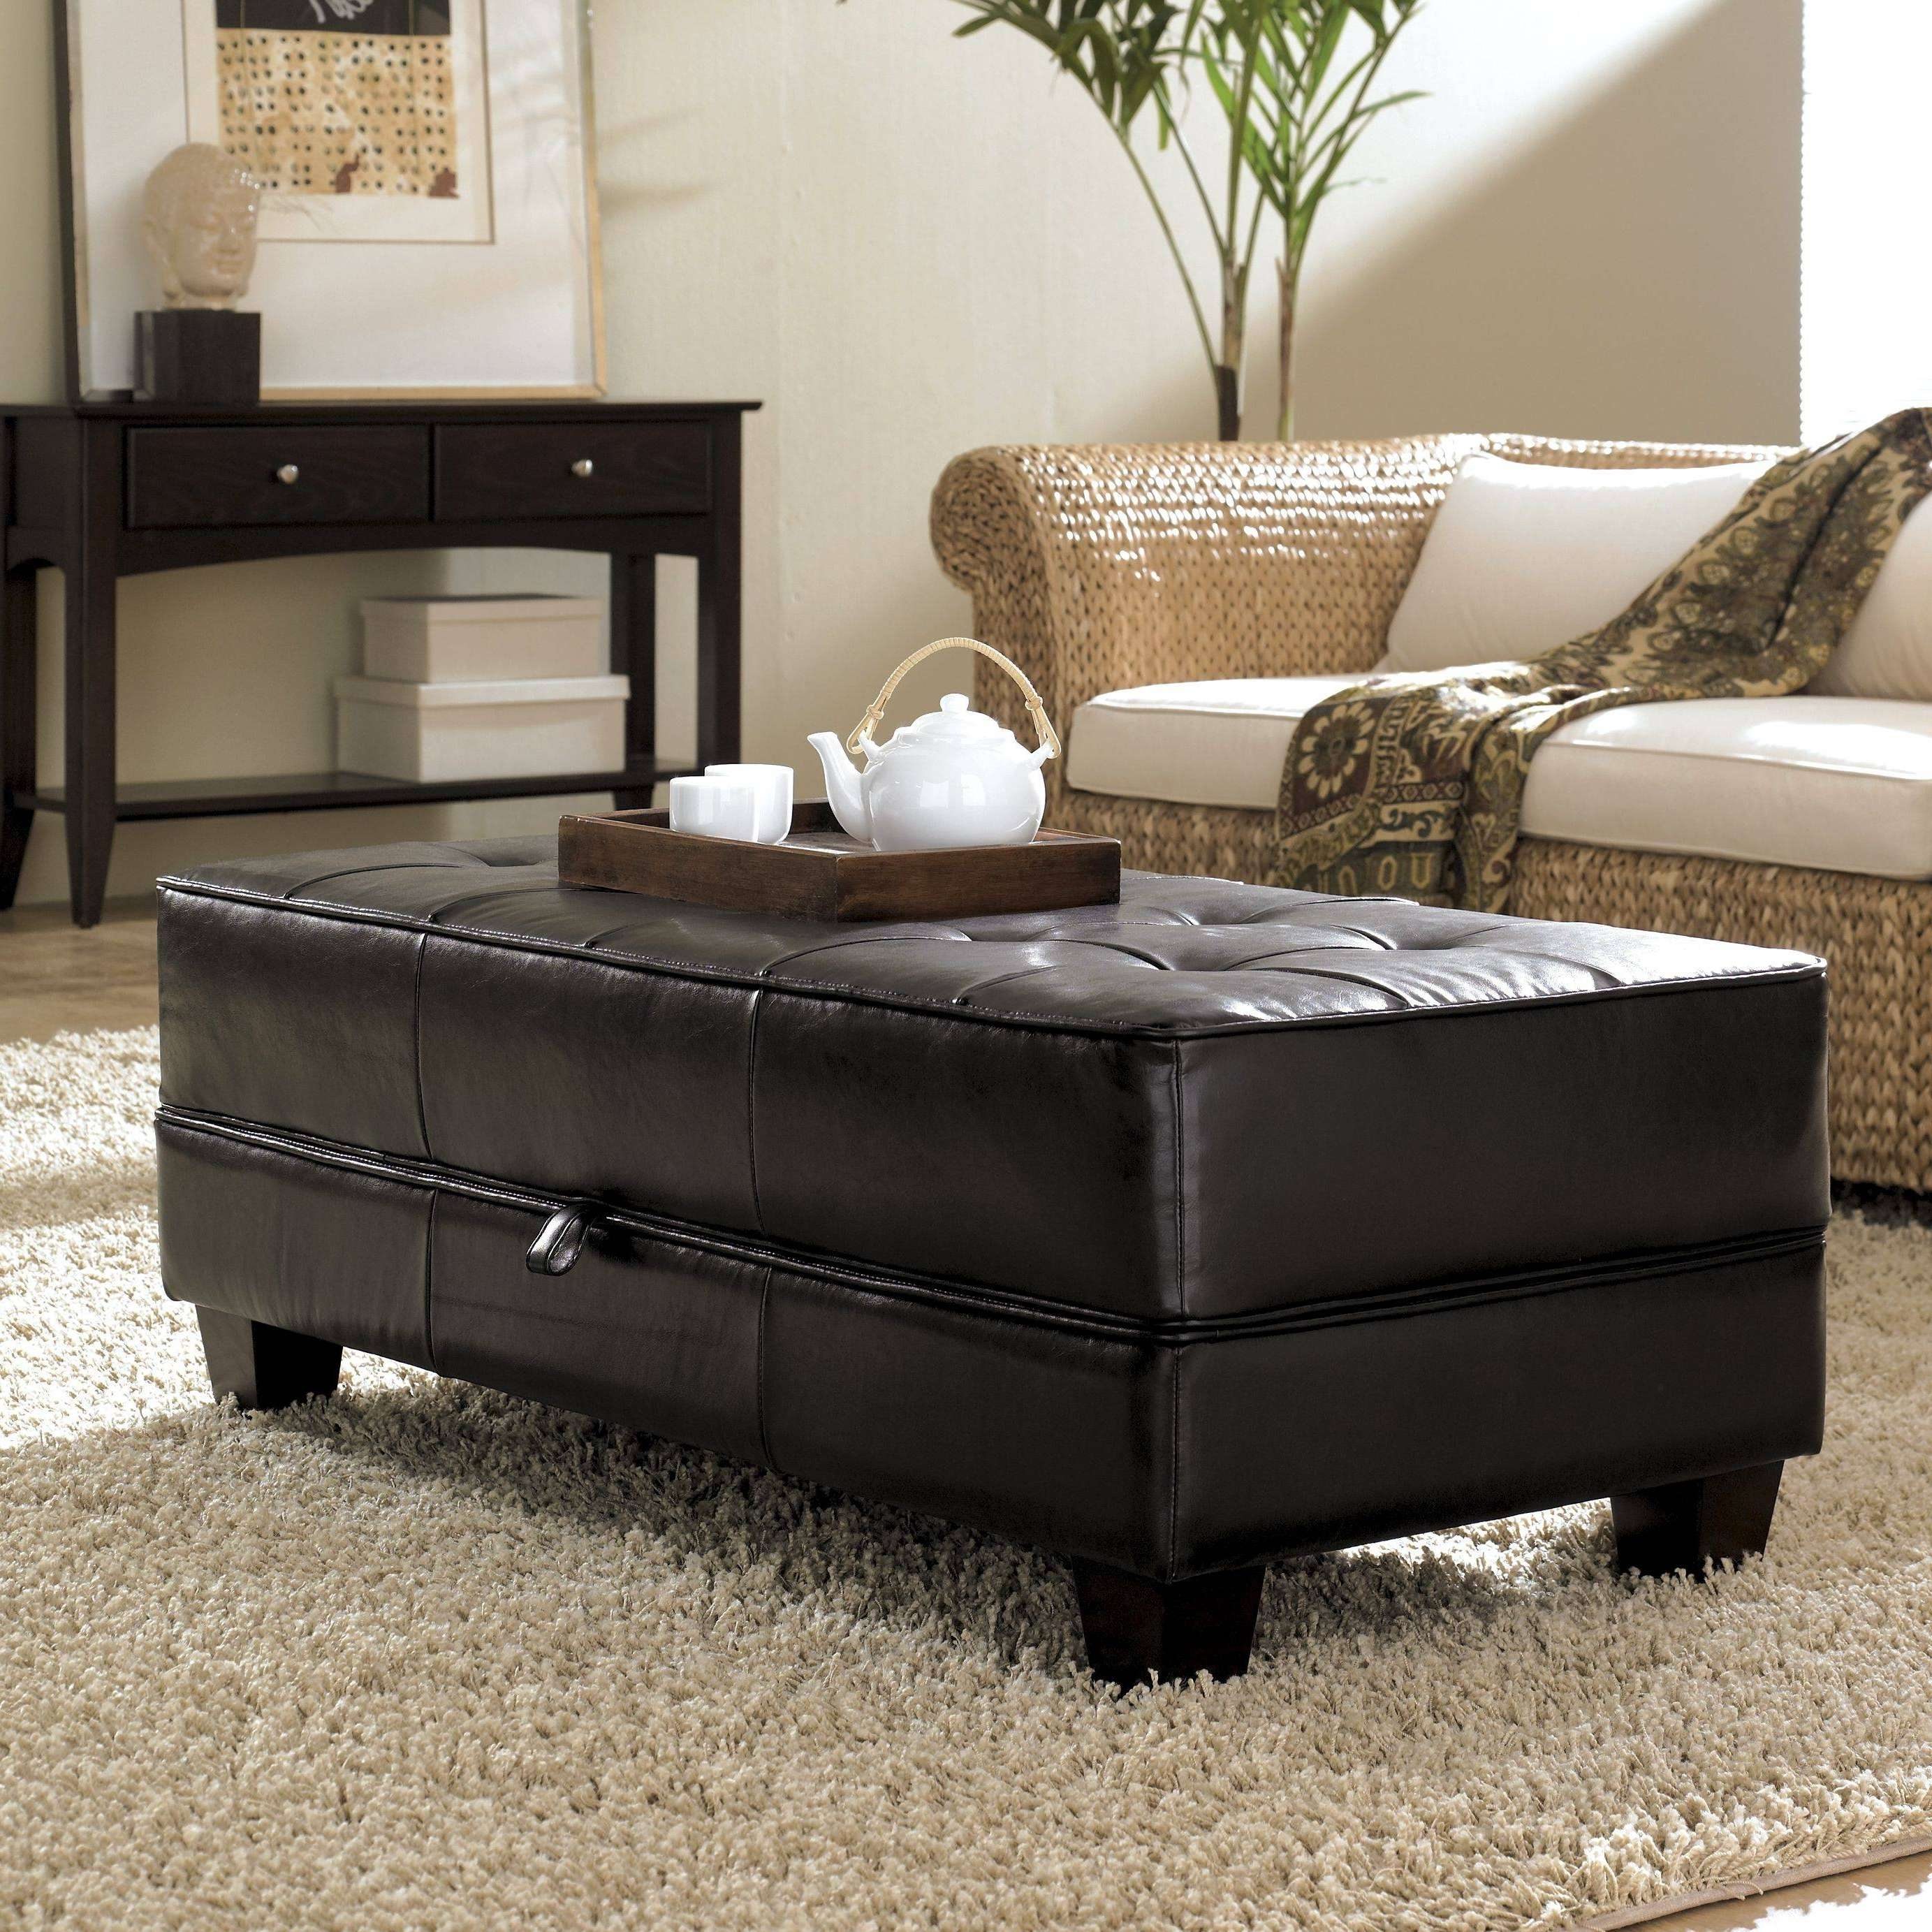 Coffee Table 2017 Popular Brown Leather Ottoman Coffee Tables With Regard To Fashionable Brown Leather Ottoman Coffee Tables With Storages (View 3 of 20)